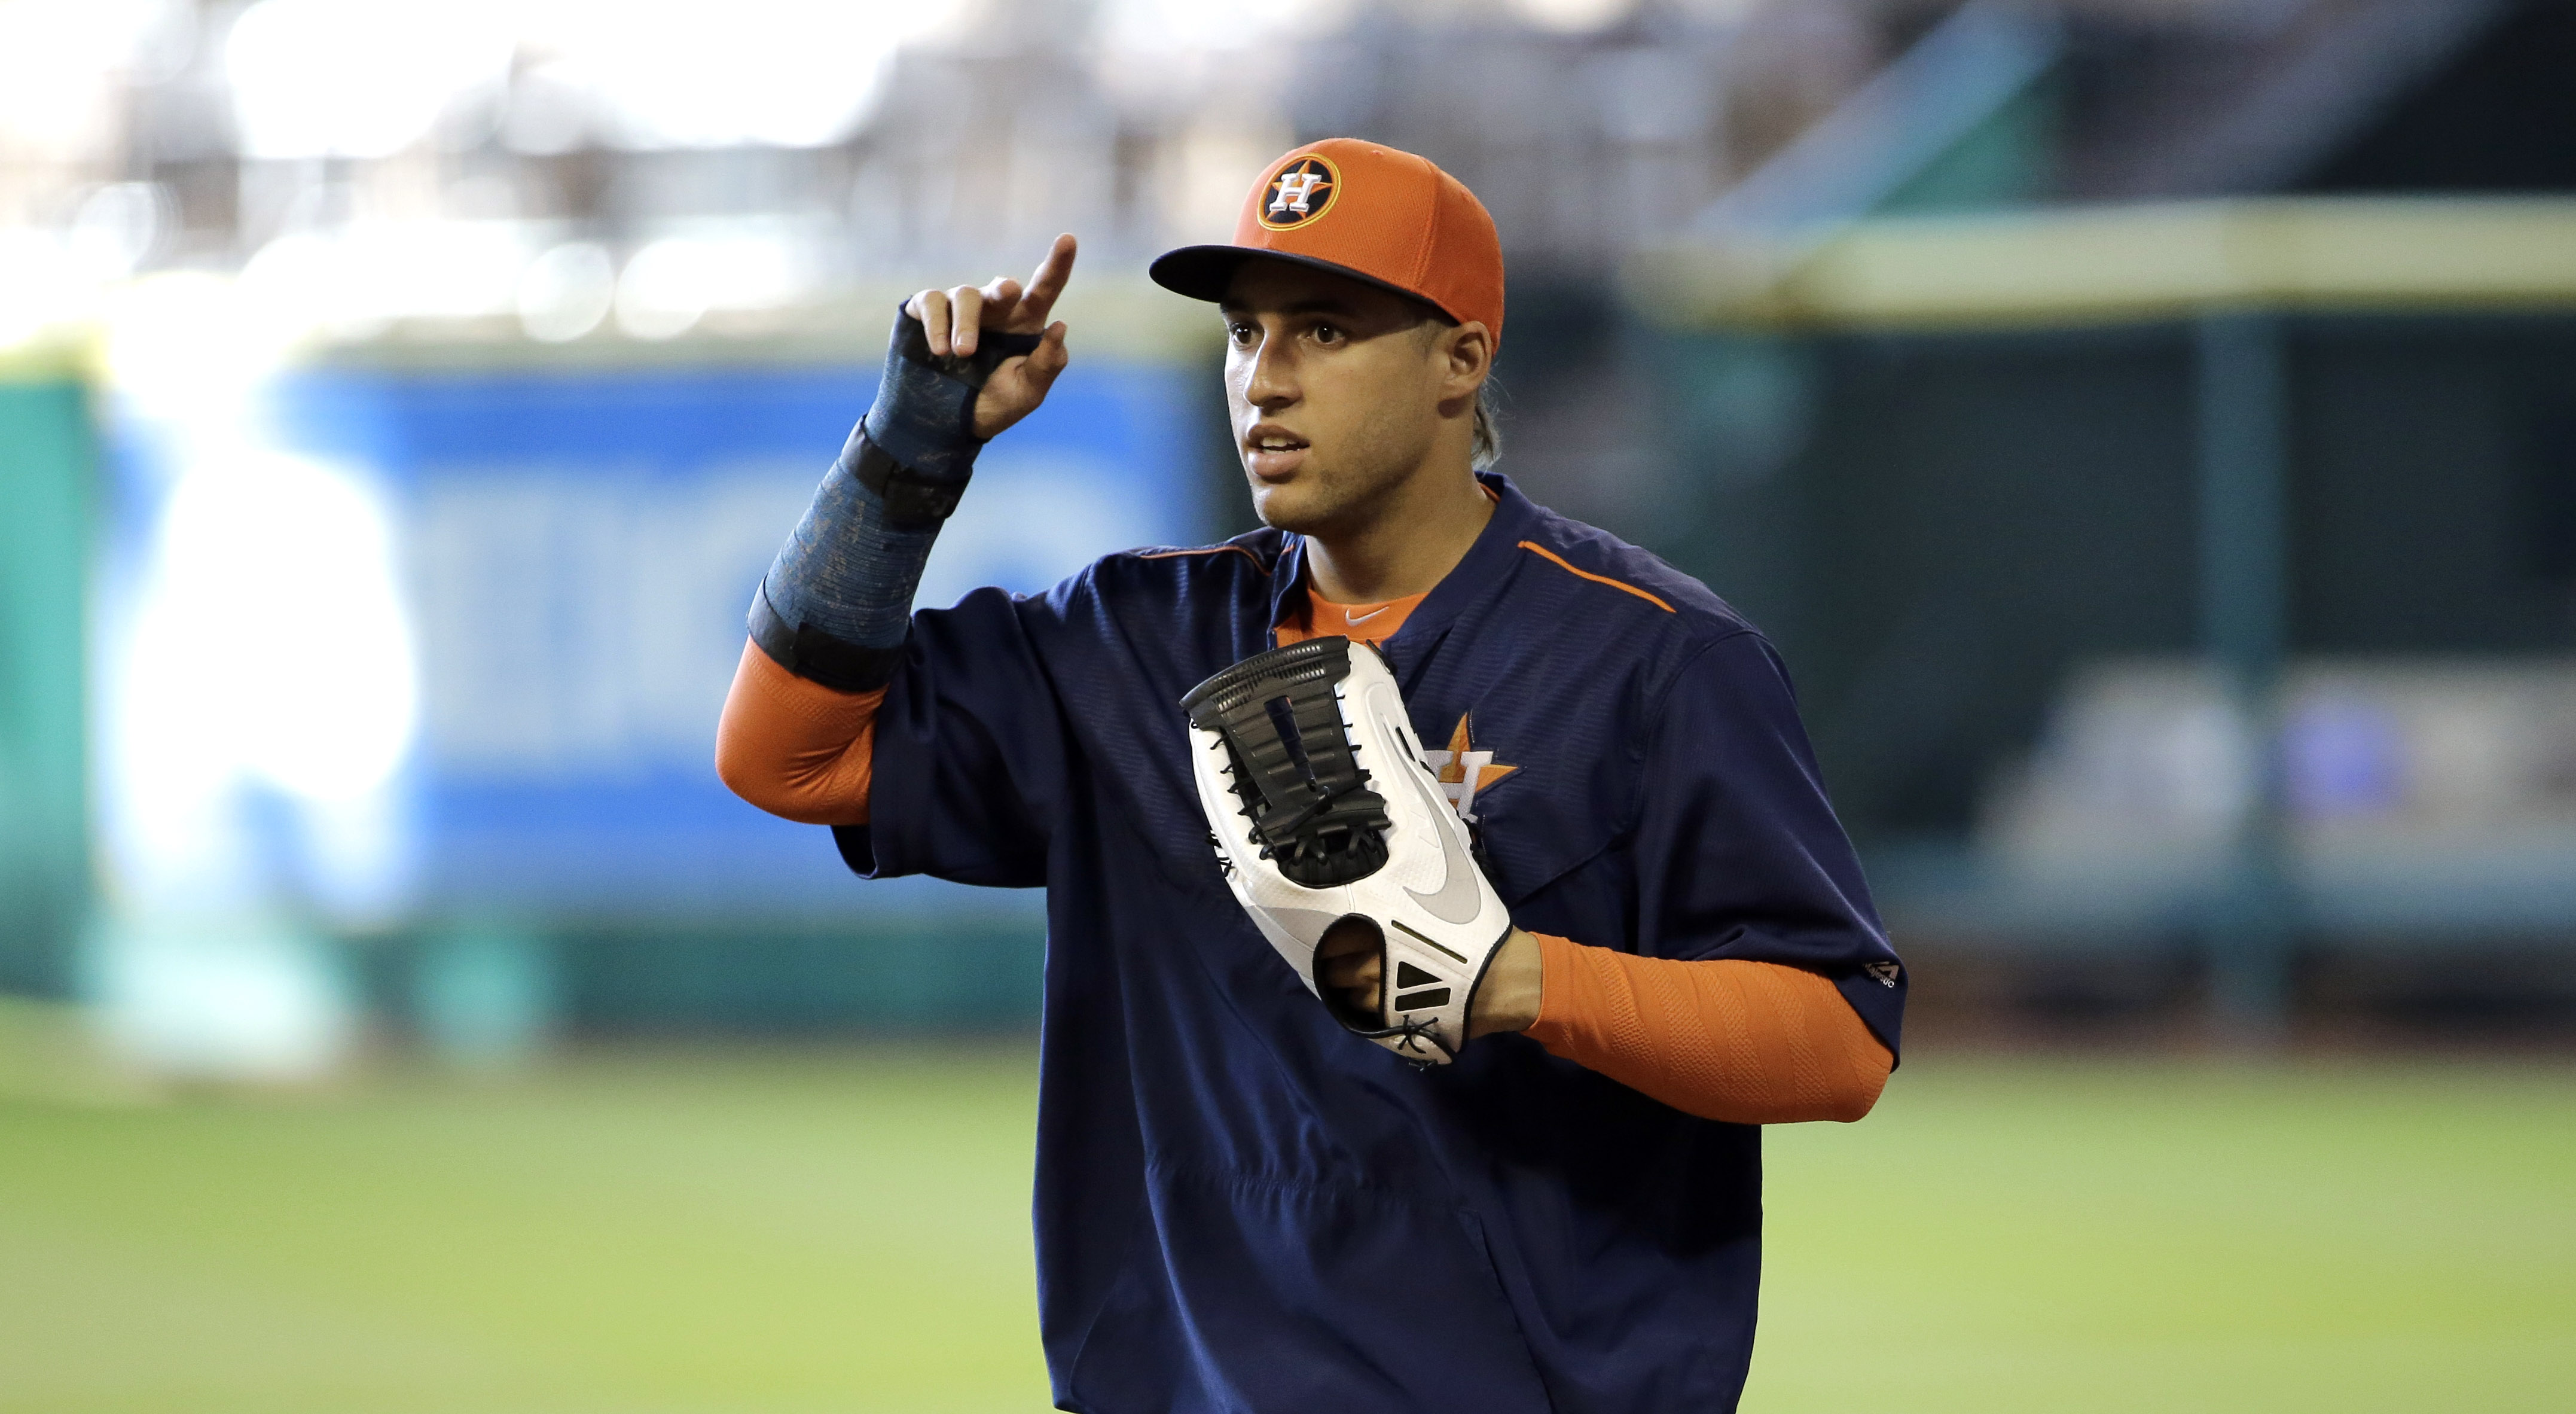 Houston Astros' George Springer fields ground ball while wearing a cast during batting practice before a baseball game against the Arizona Diamondbacks Friday, July 31, 2015, in Houston. Springer is out with fractured right wrist. (AP Photo/David J. Phill